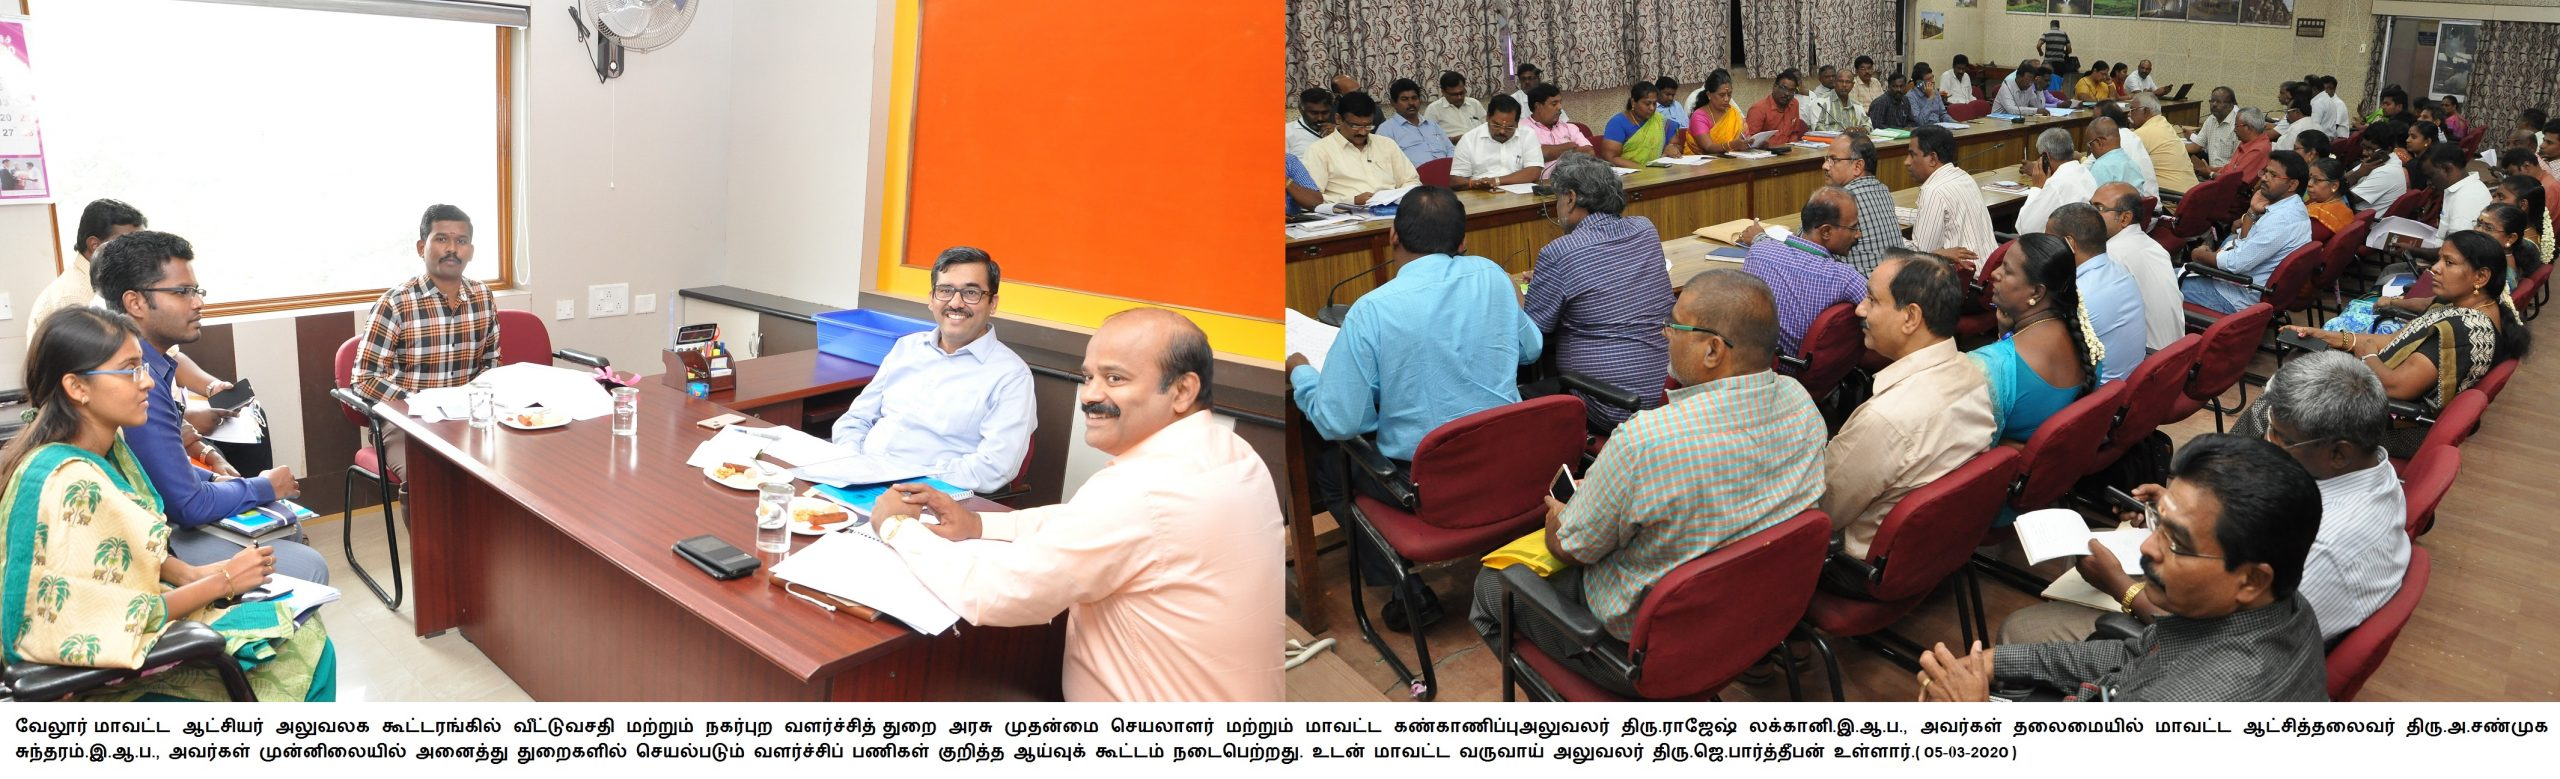 District Monitoring Officer, Collector North-East Monsoon Preparedness Meeting 05-03-2020